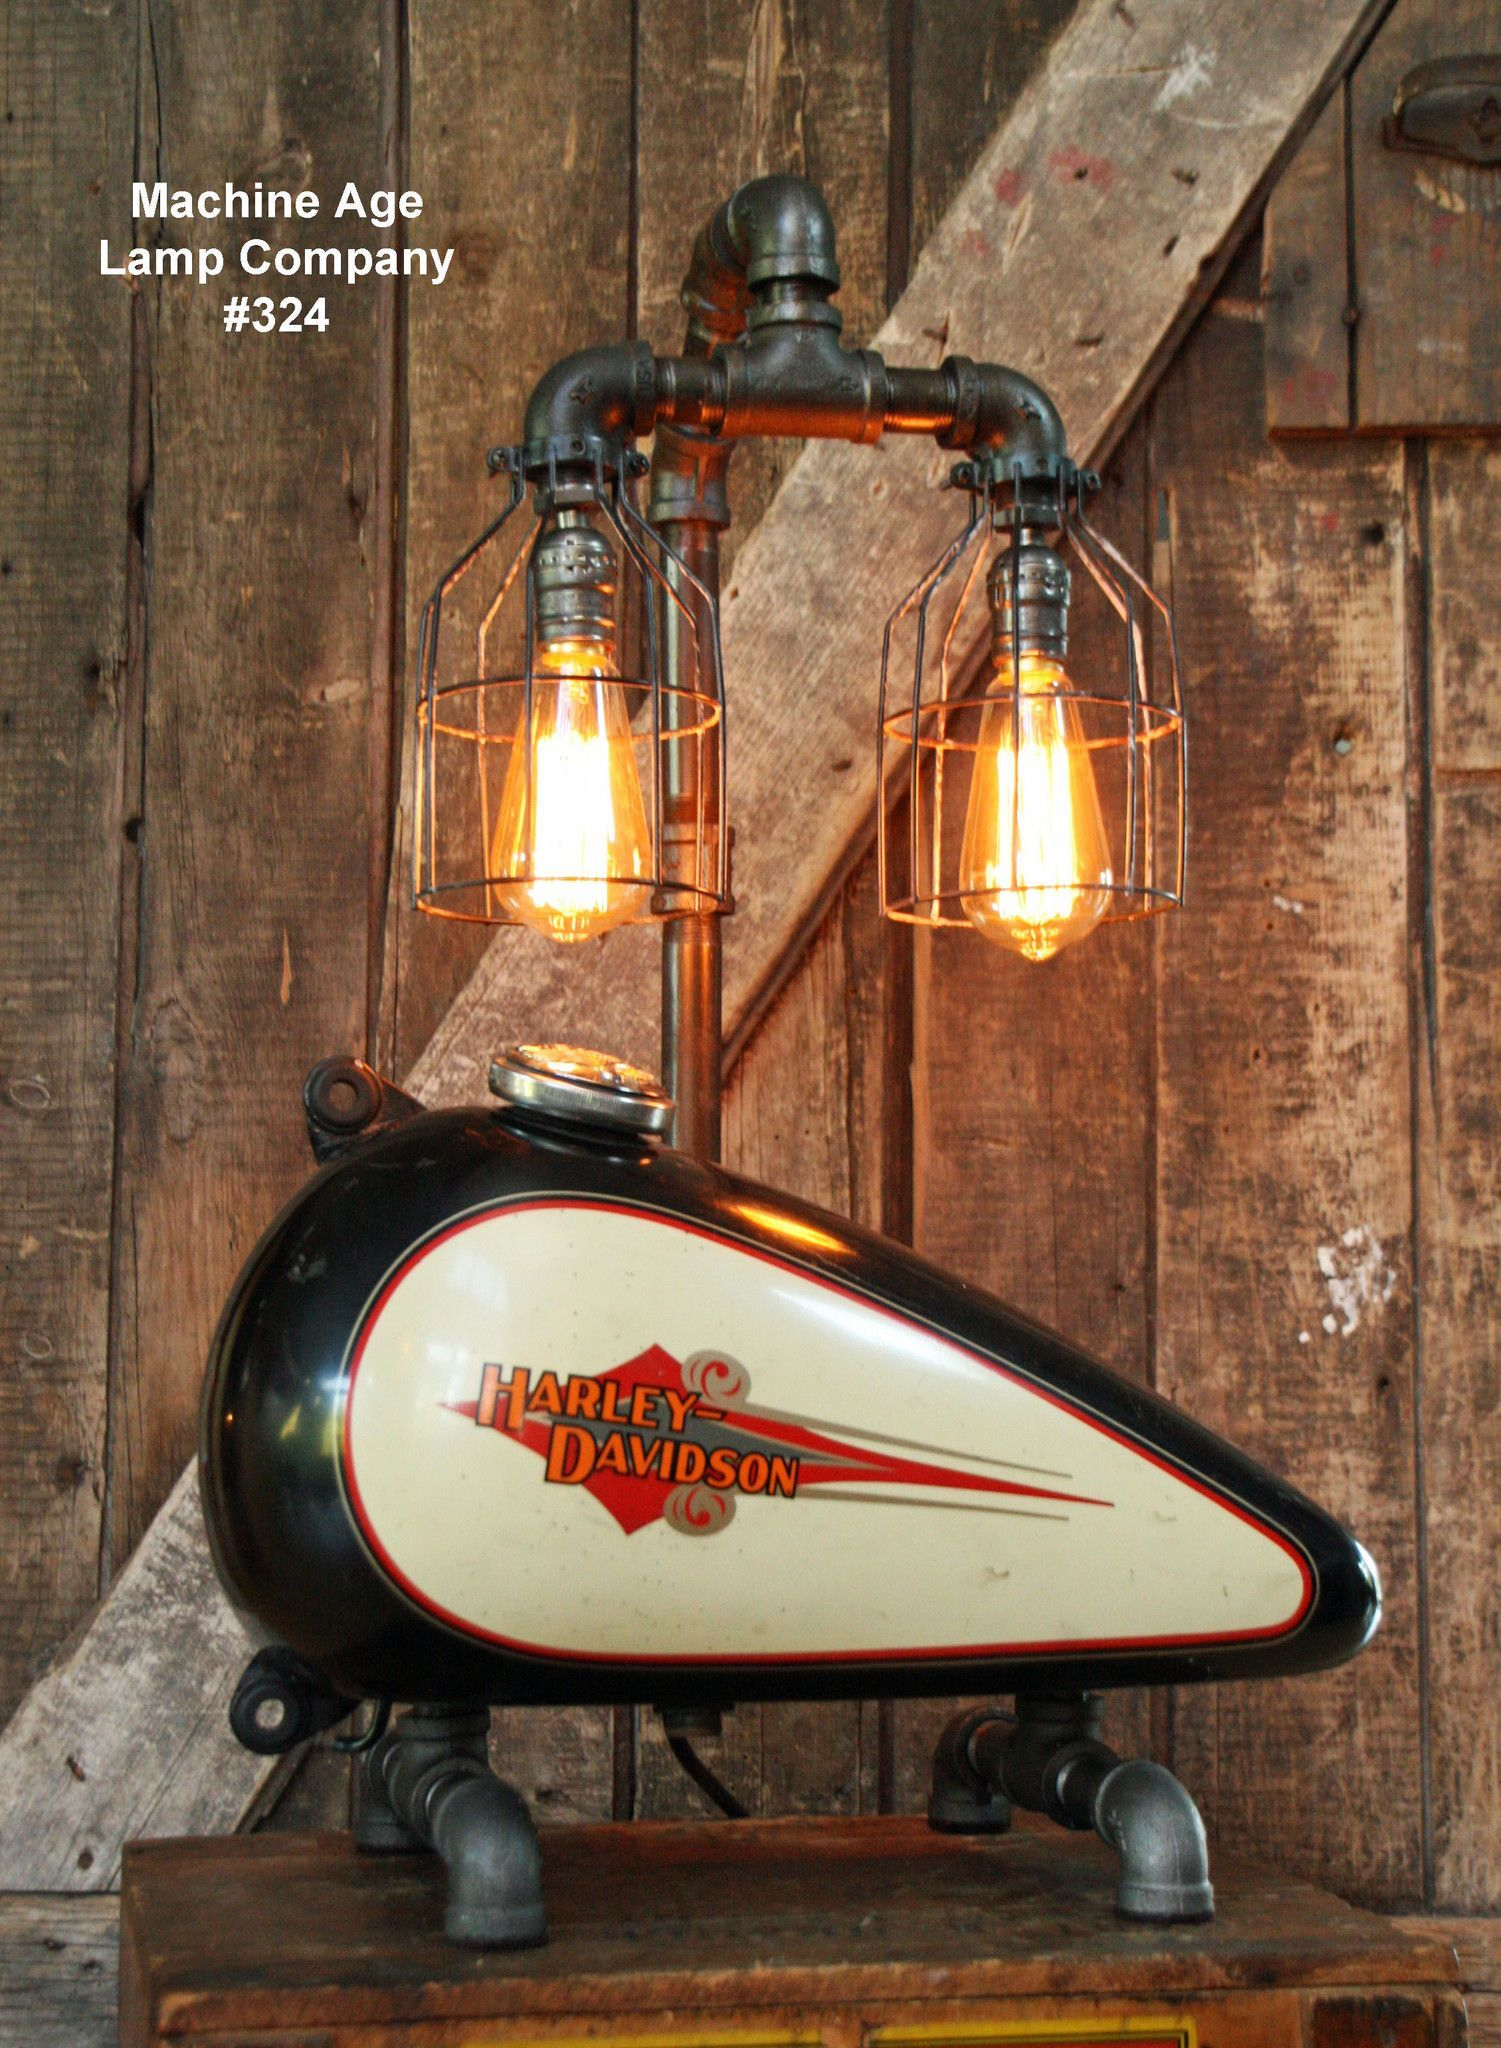 steampunk industrial lamp vintage harley davidson motorcycle gas tank 324 sold wohnraum. Black Bedroom Furniture Sets. Home Design Ideas